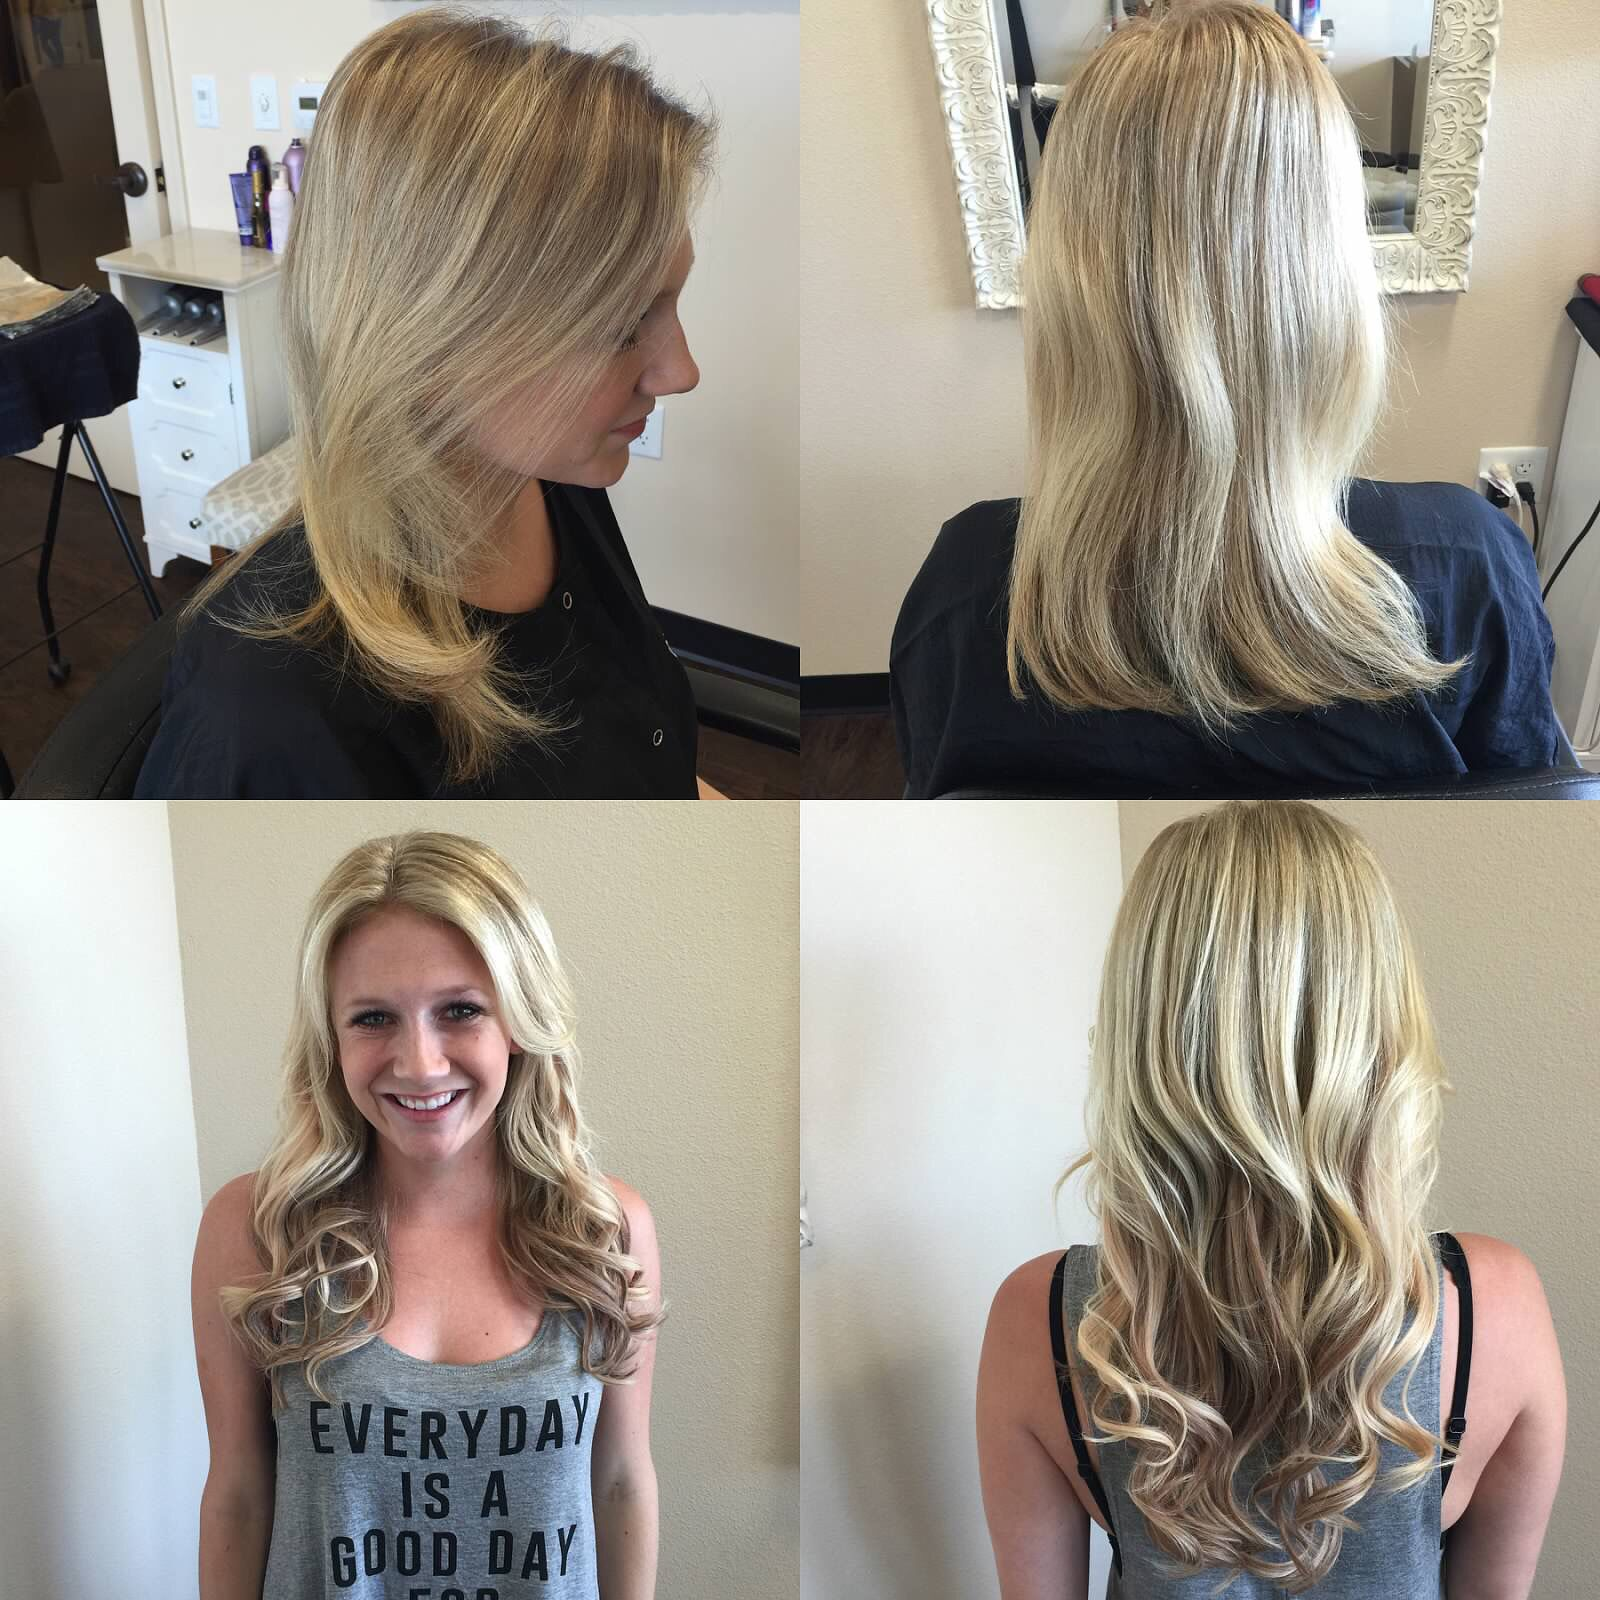 Boom boom!! Before and after Babe tapein extensions